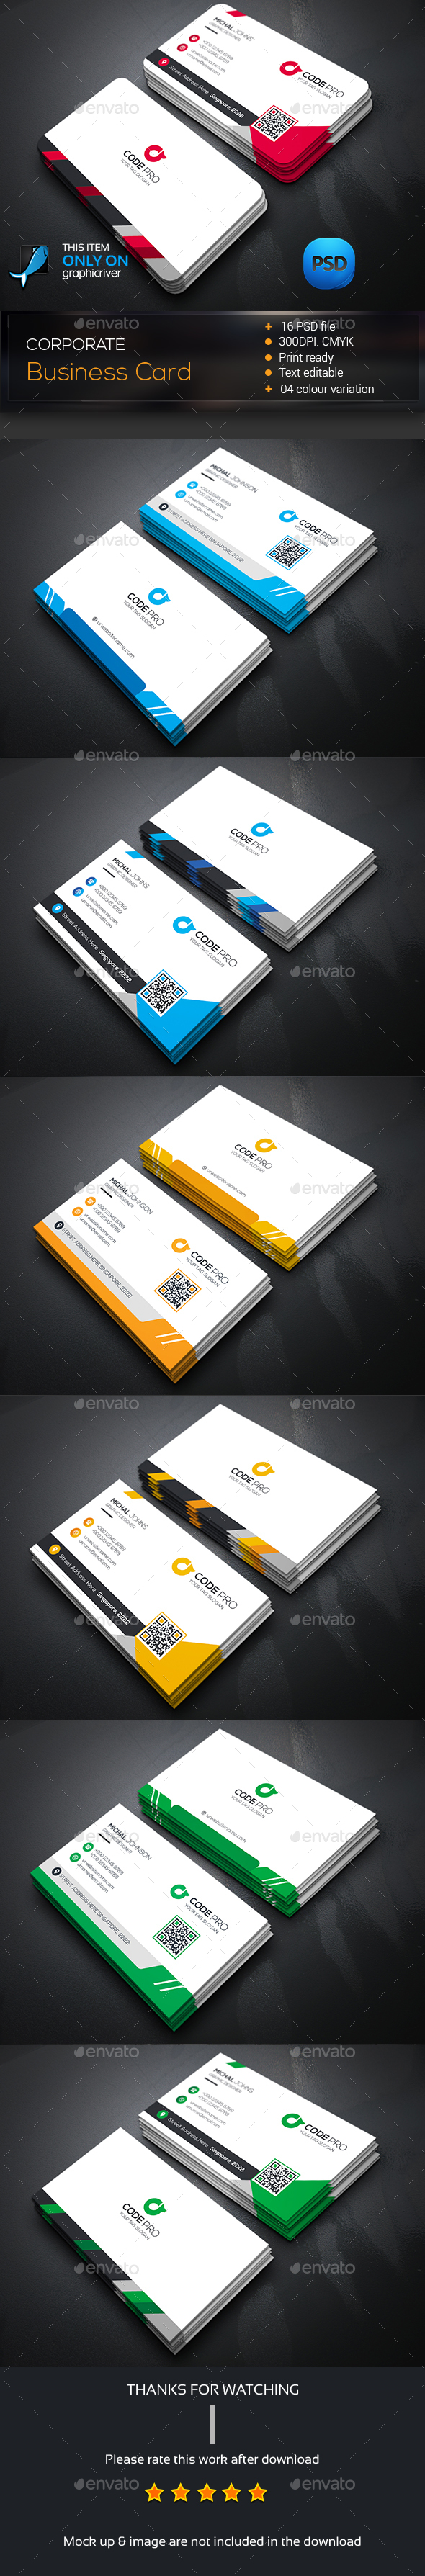 Business card template bundle psd design download http business card template bundle psd design download httpgraphicriver reheart Choice Image